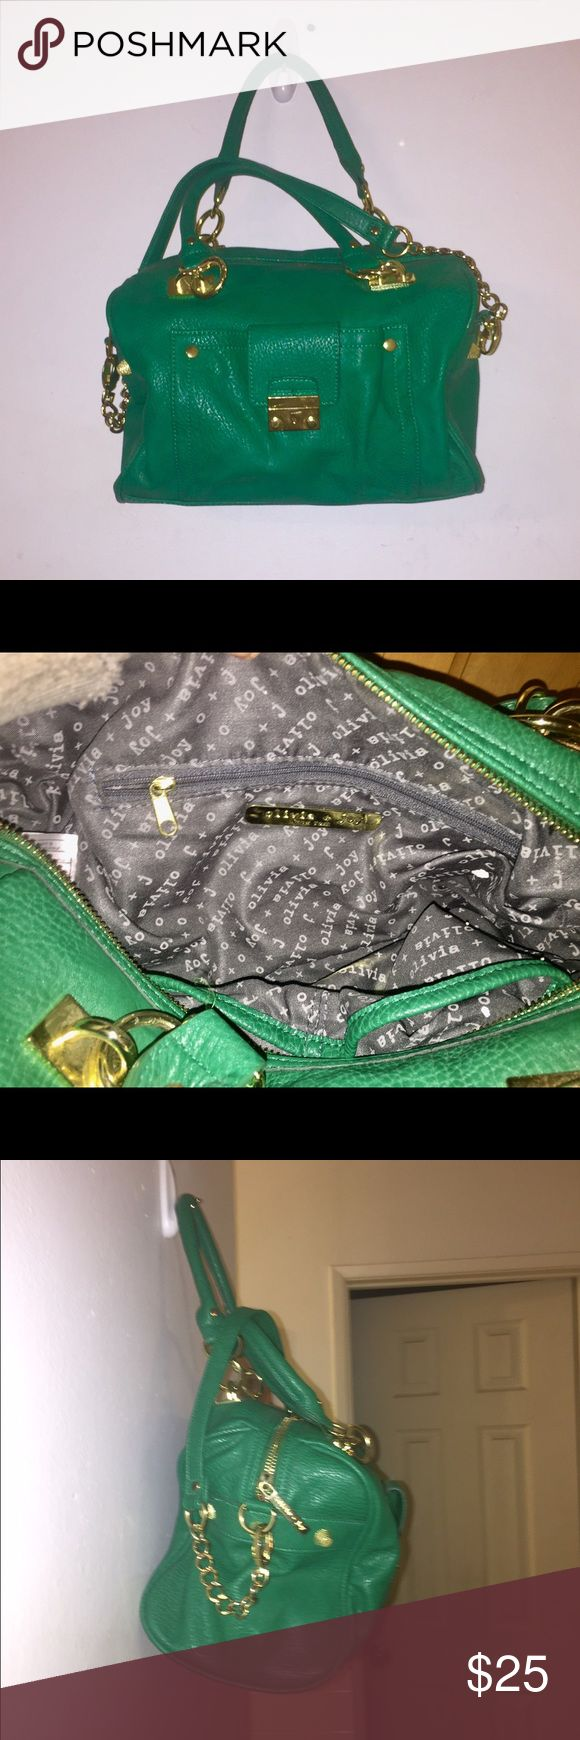 Olivia + Joy Green Handbag Got to say it. Usually when I find this brand of bag 2 nd hand it's beyond hope but not this one! It's in primo condition. No tears or scuffs- nothing! About the only derogatory thing I can say is the pebbled texturing is not done all the way throughout the bag but on closer inspection this seems to be the styling and not a defect. Man made materials. Medium sized bag Length 12 inches Height 8 inches Depth 6 inches & Strap(s) drop 7.5 & 10 inches Olivia + Joy Bags…